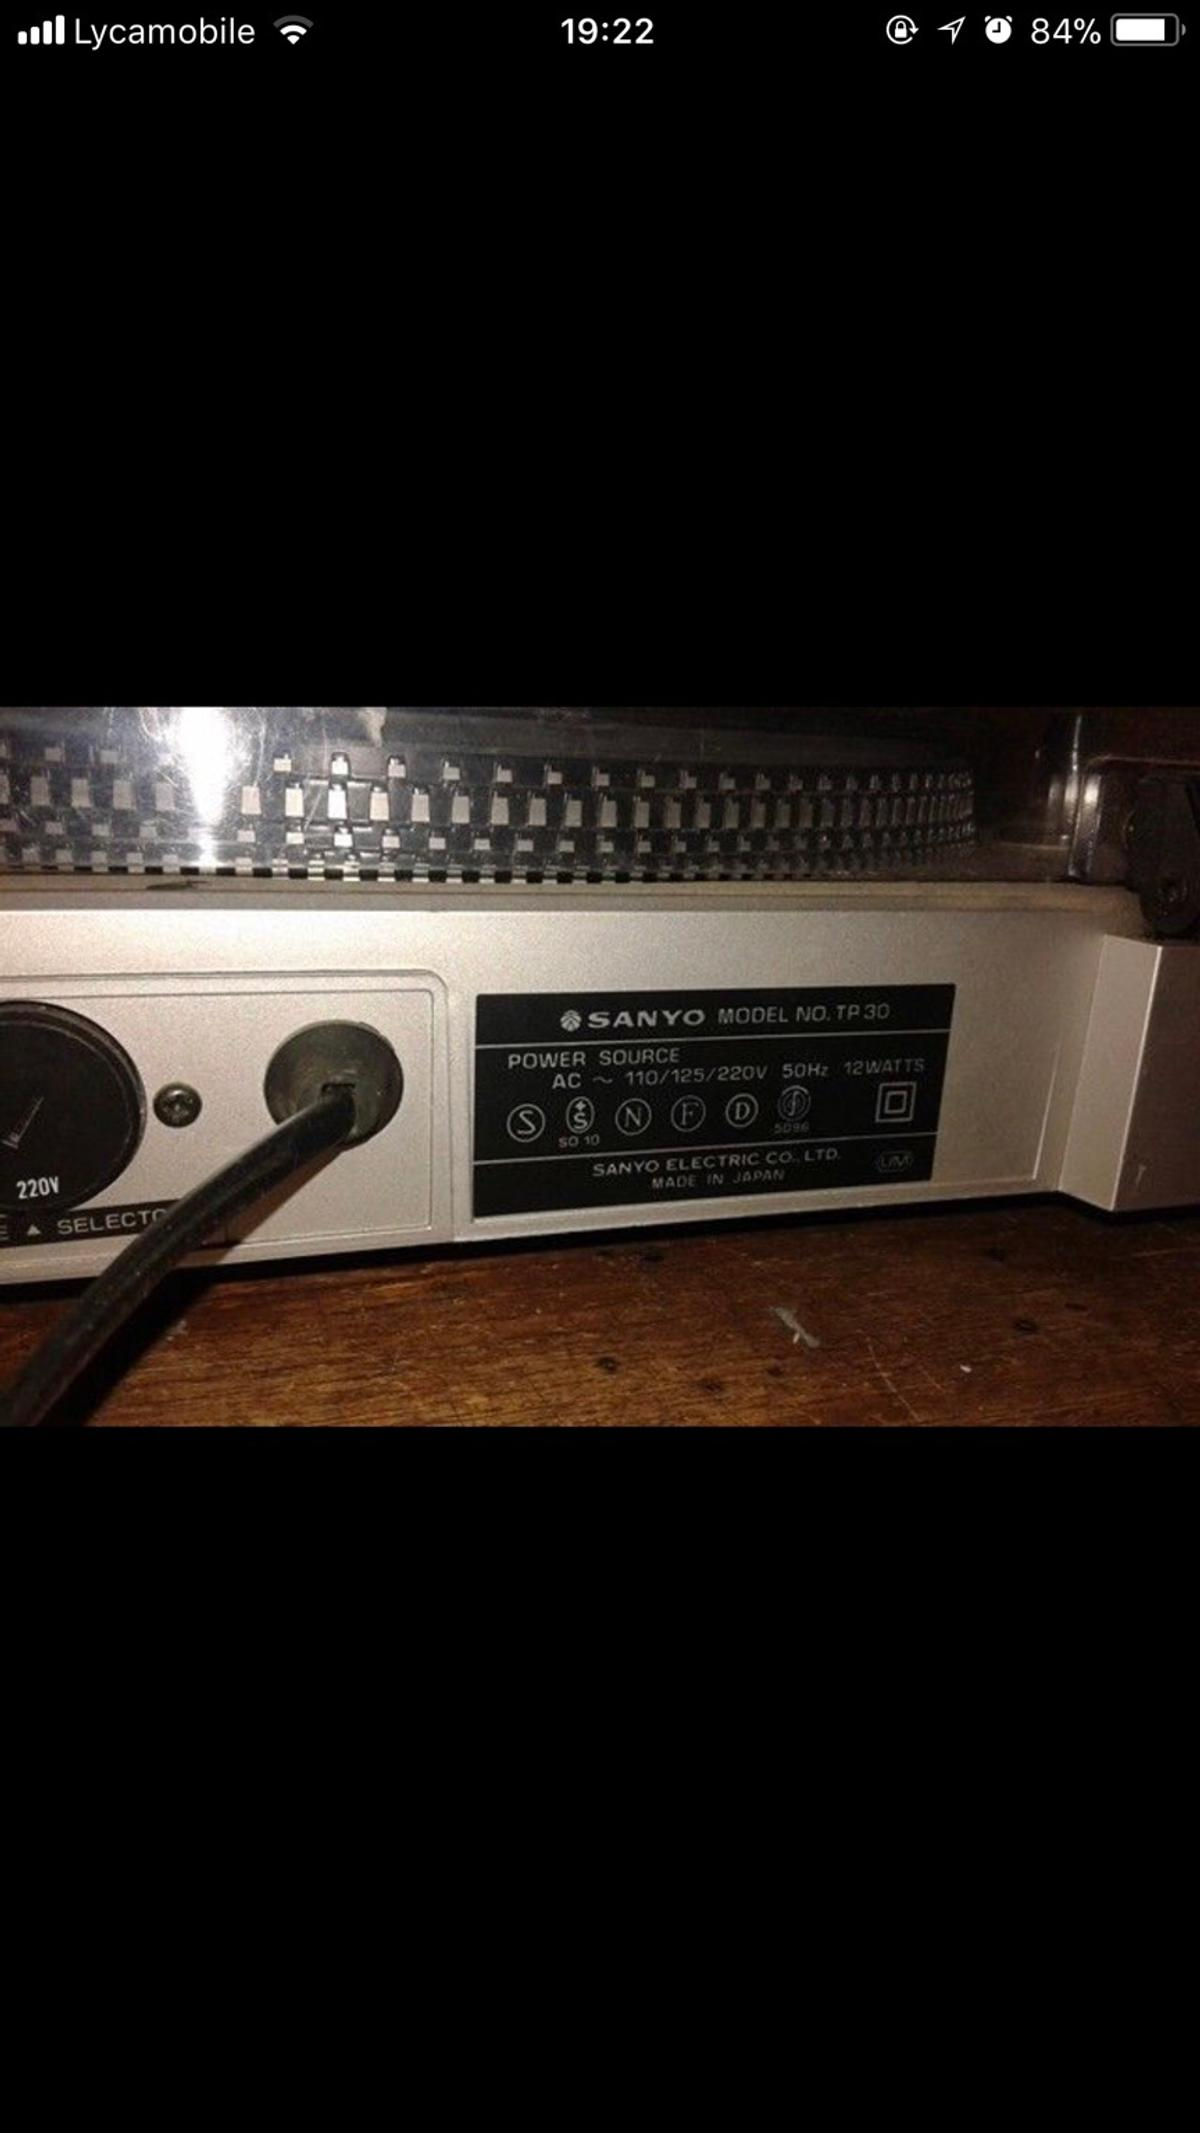 Turntable vintage Sanyo TP 30 mint condition in N1 Hackney for